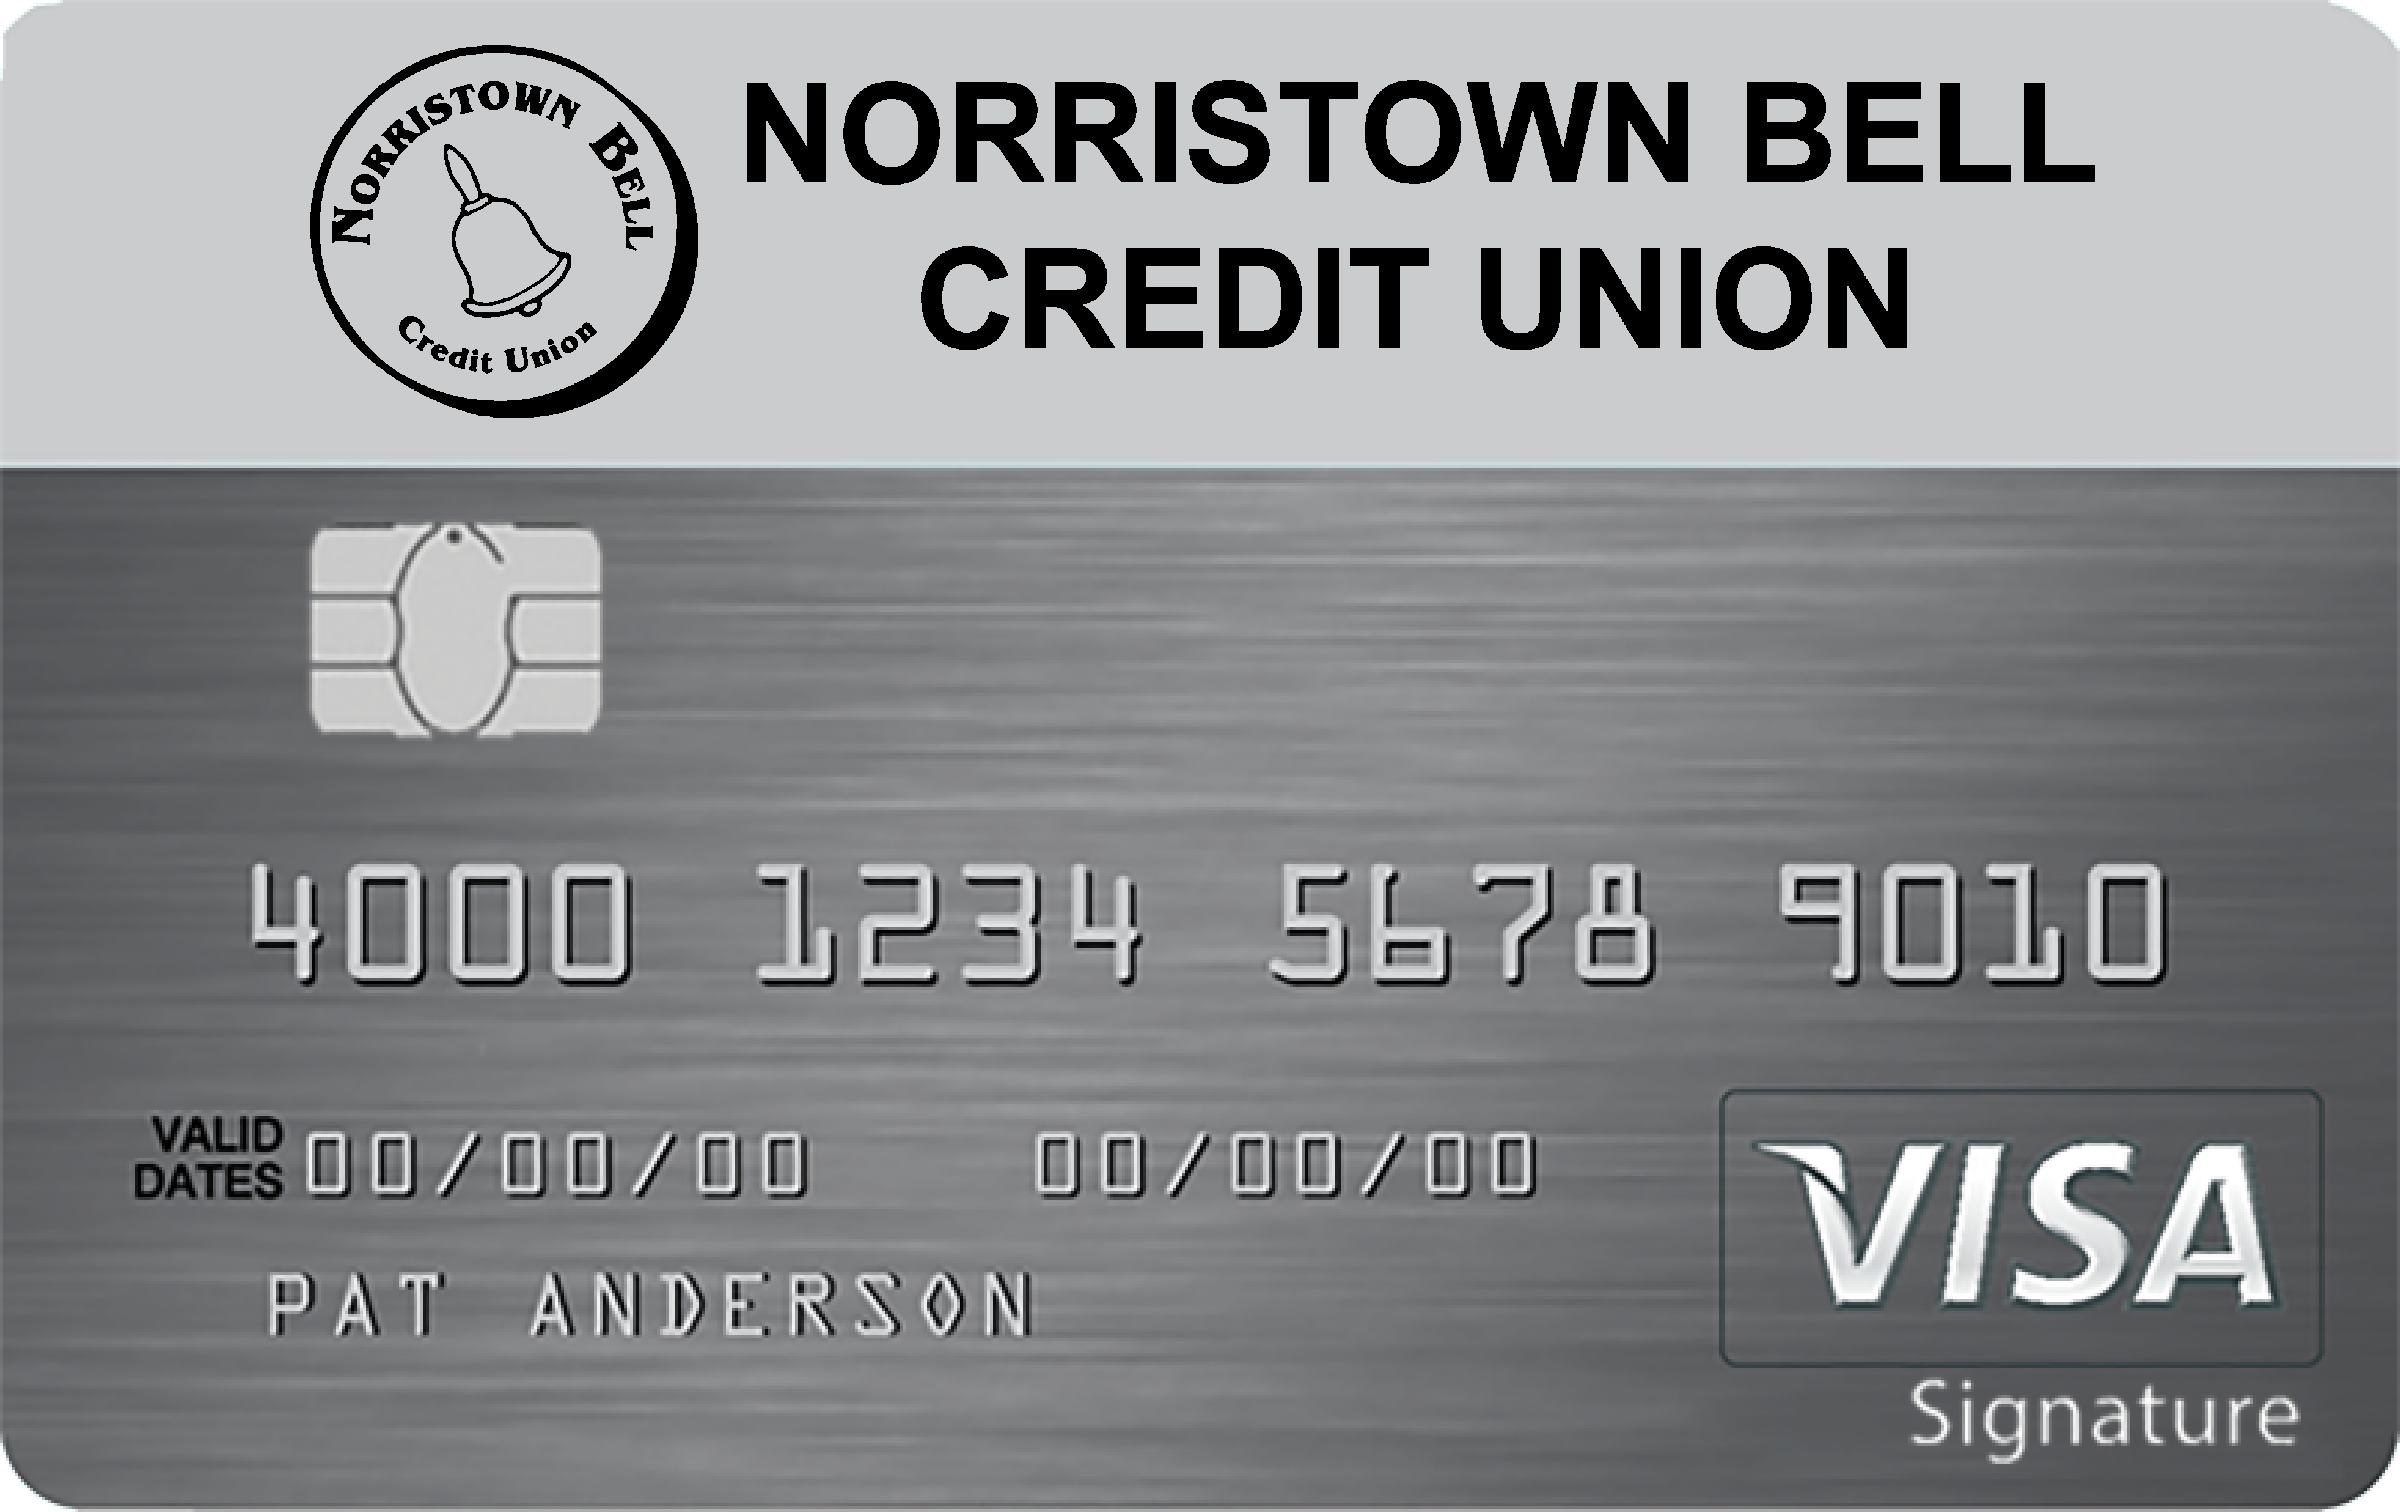 Norristown Bell Credit Union